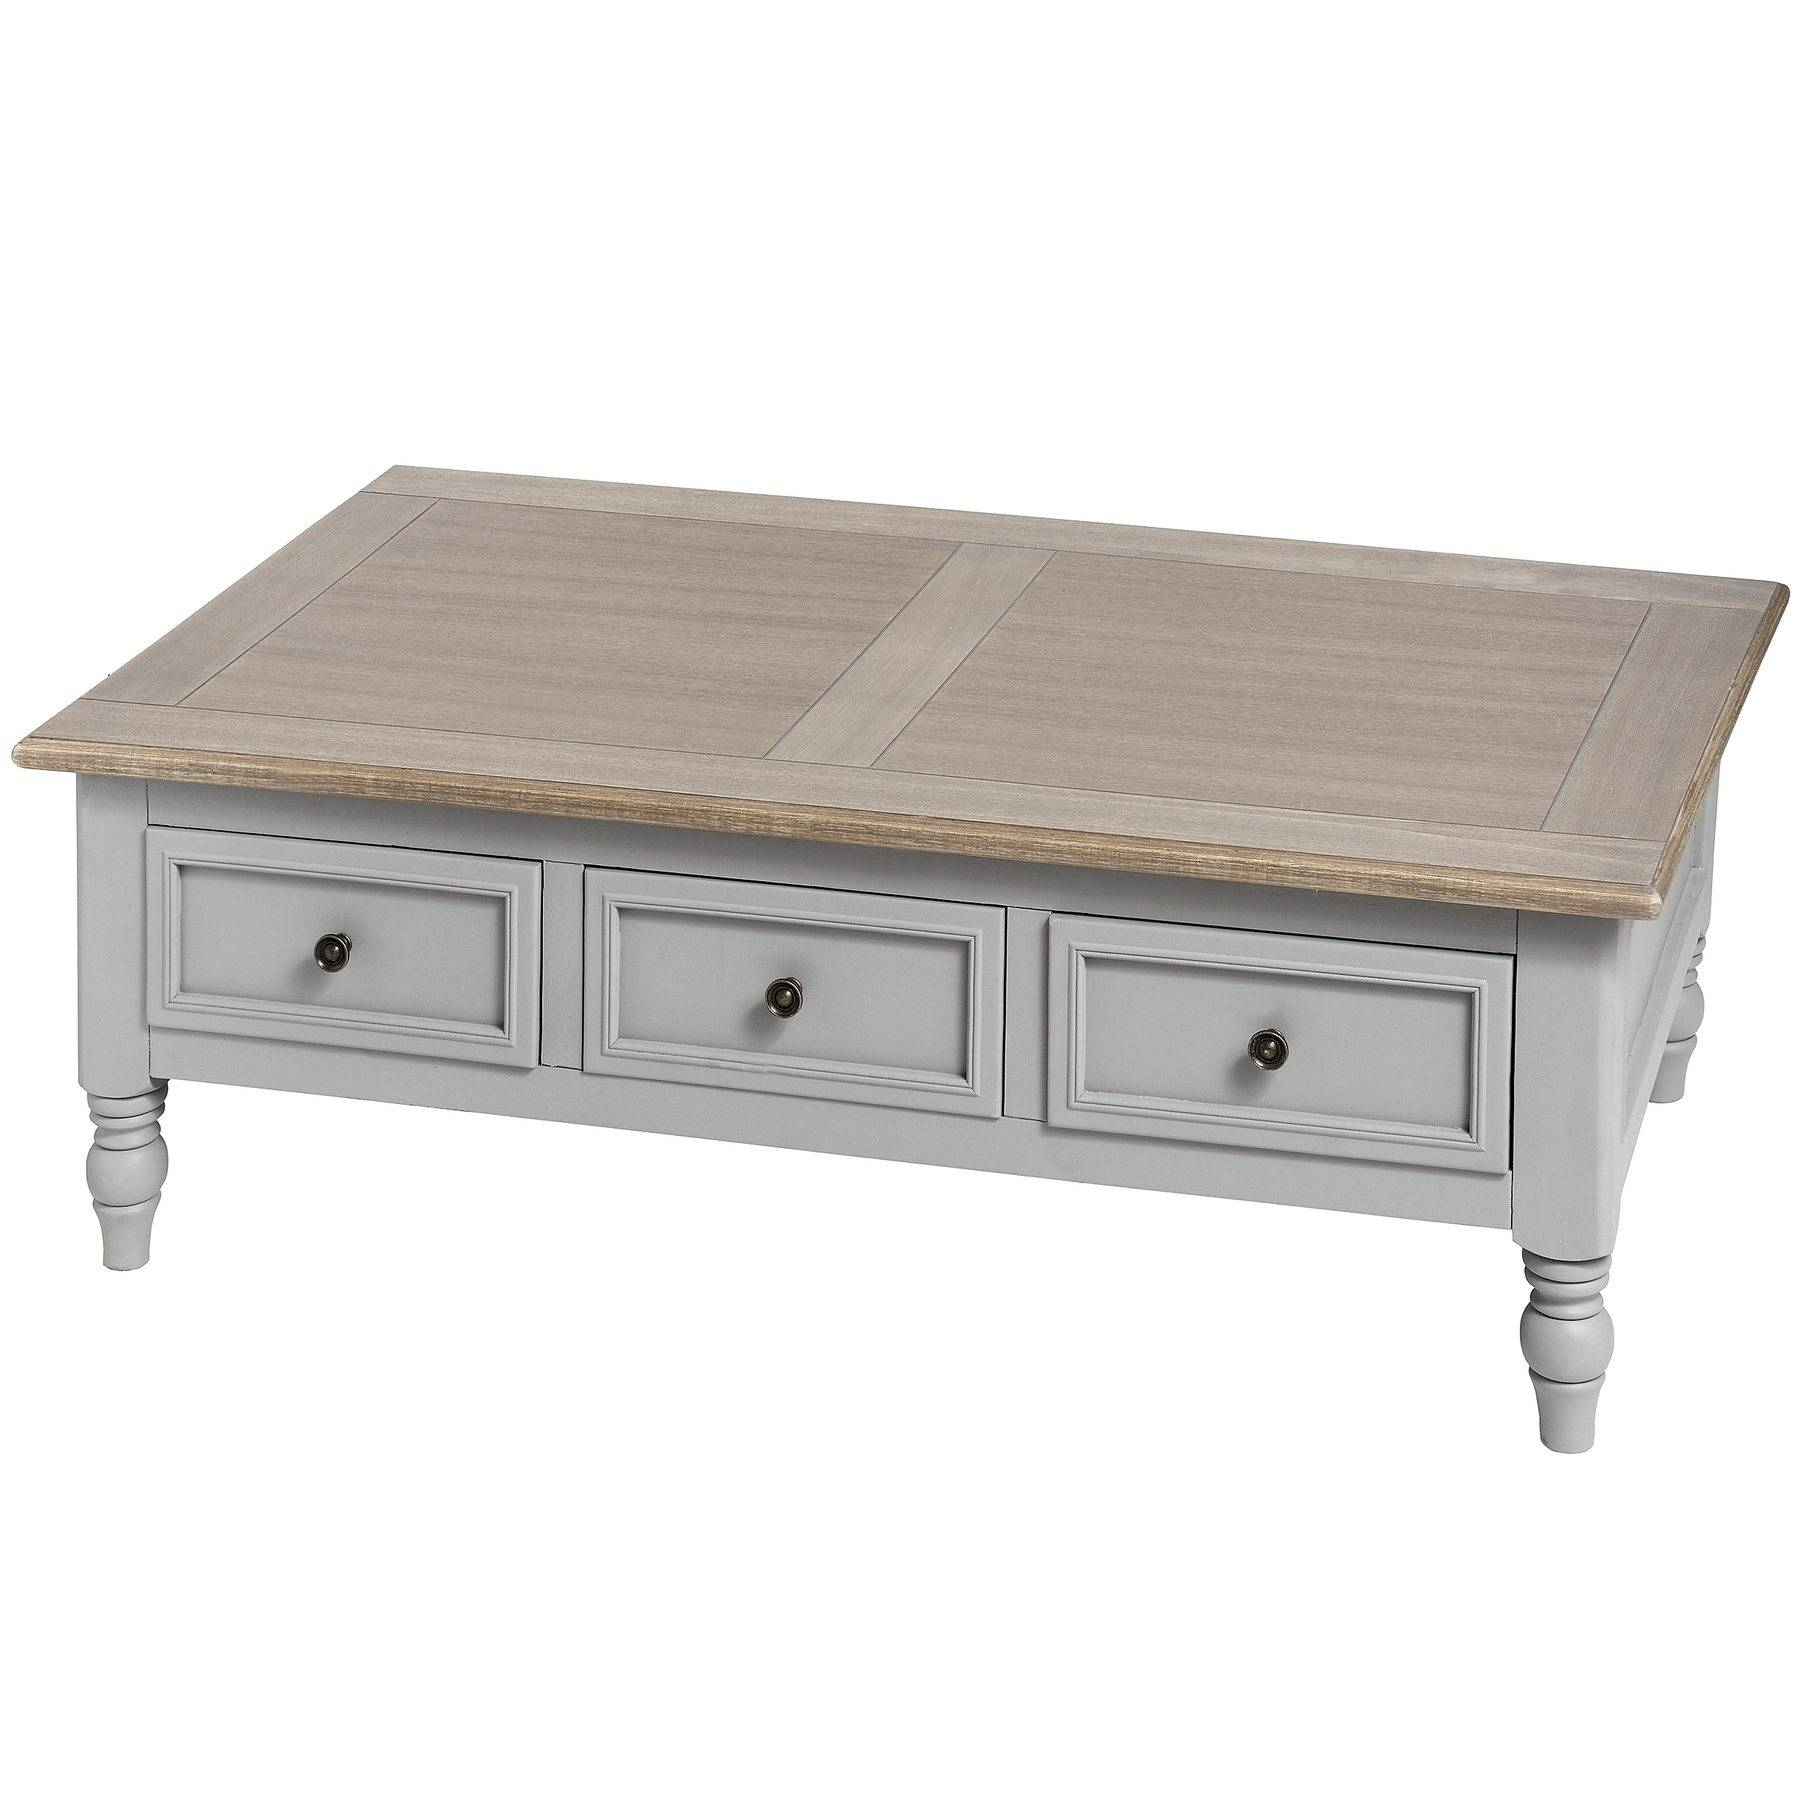 Coffee Table: Best Grey Coffee Table Designs Driftwood Grey Coffee in Grey Coffee Table Sets (Image 11 of 30)